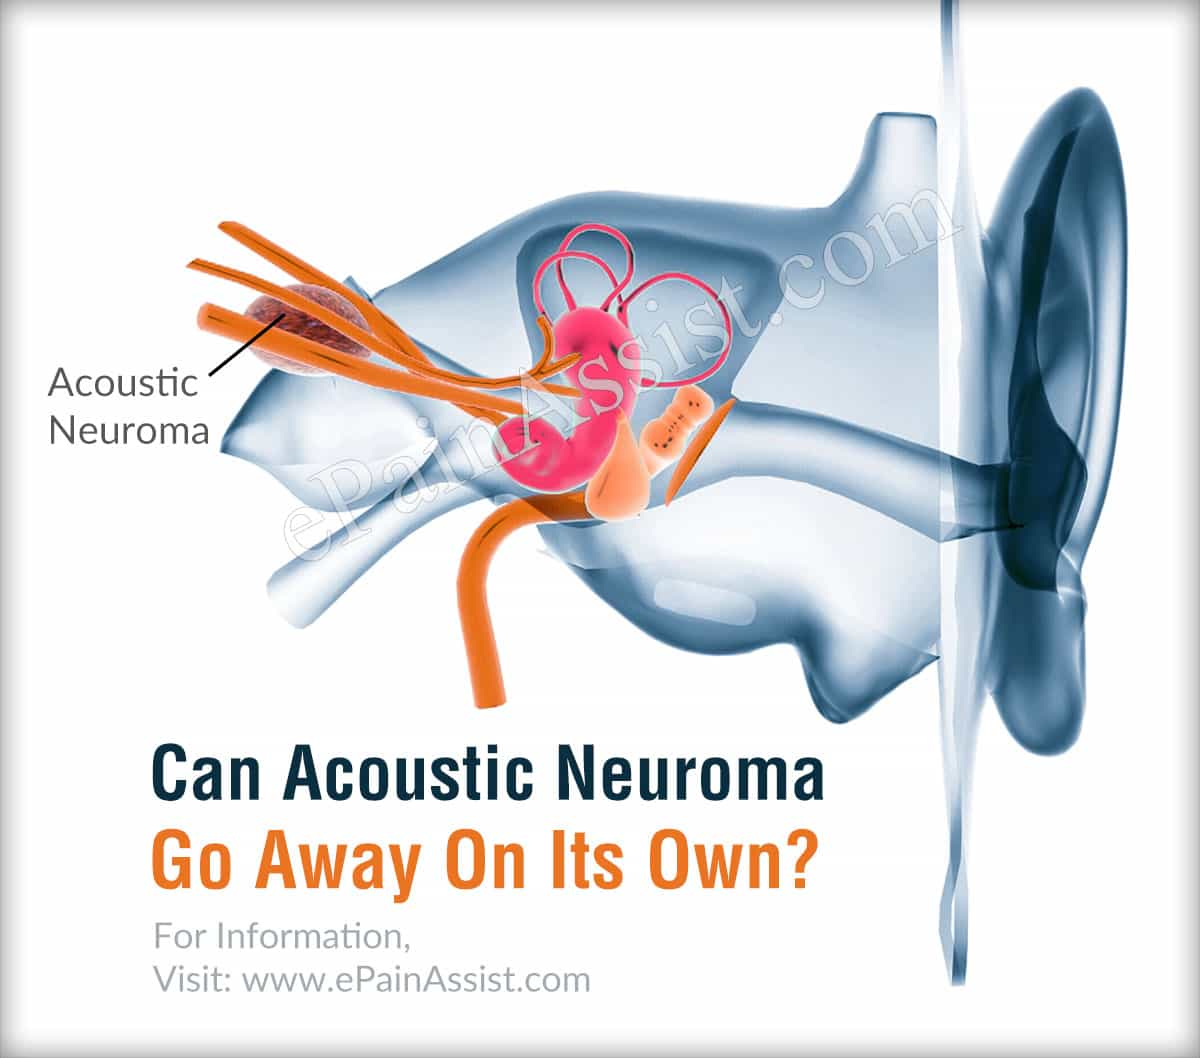 Can Acoustic Neuroma Go Away On Its Own?